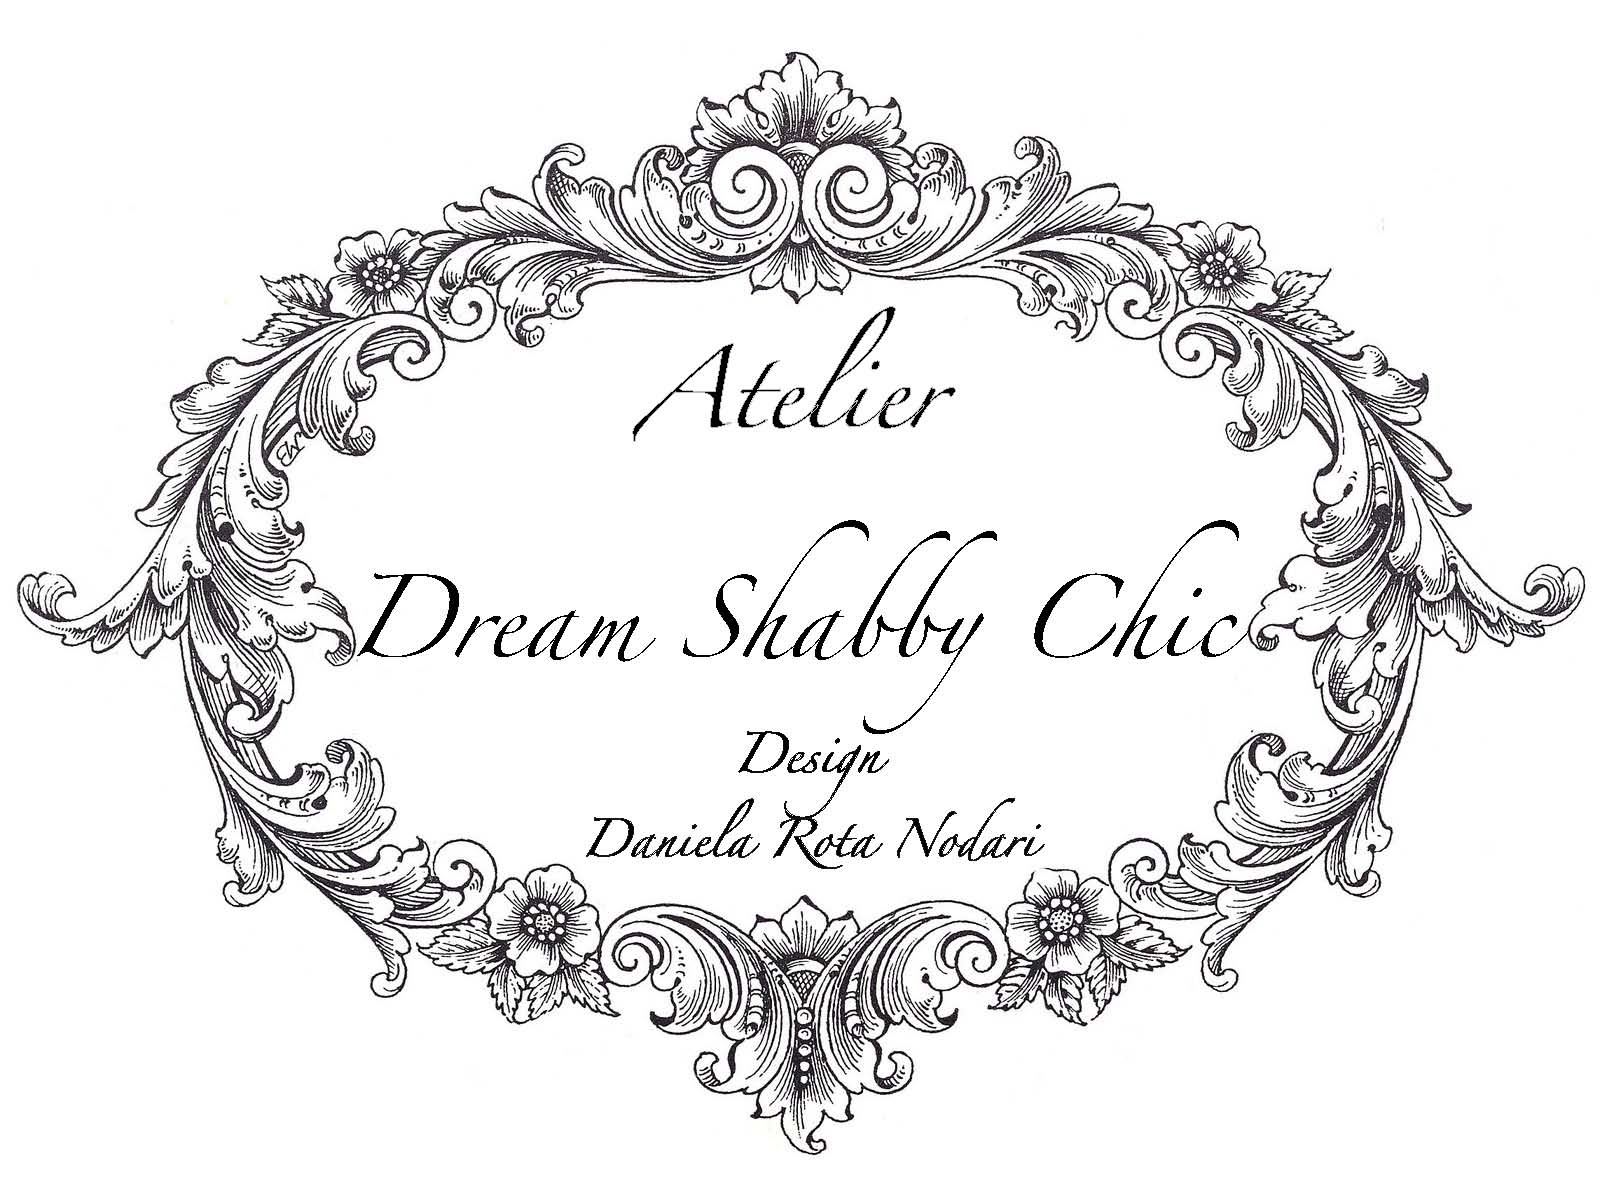 Dream Shabby Chic